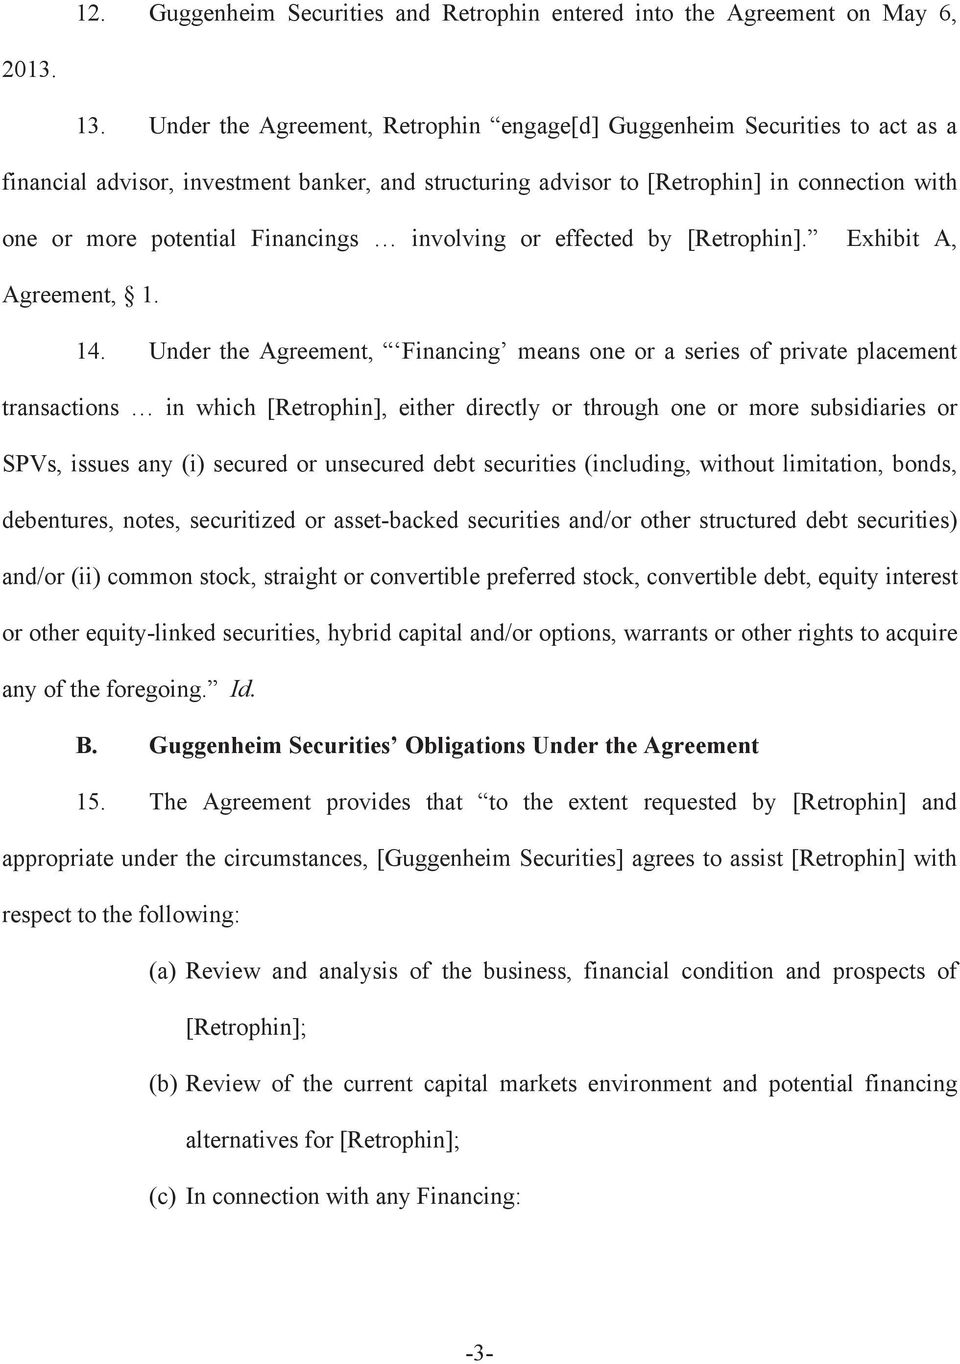 Financings involving or effected by [Retrophin]. Exhibit A, Agreement, 1. 14.